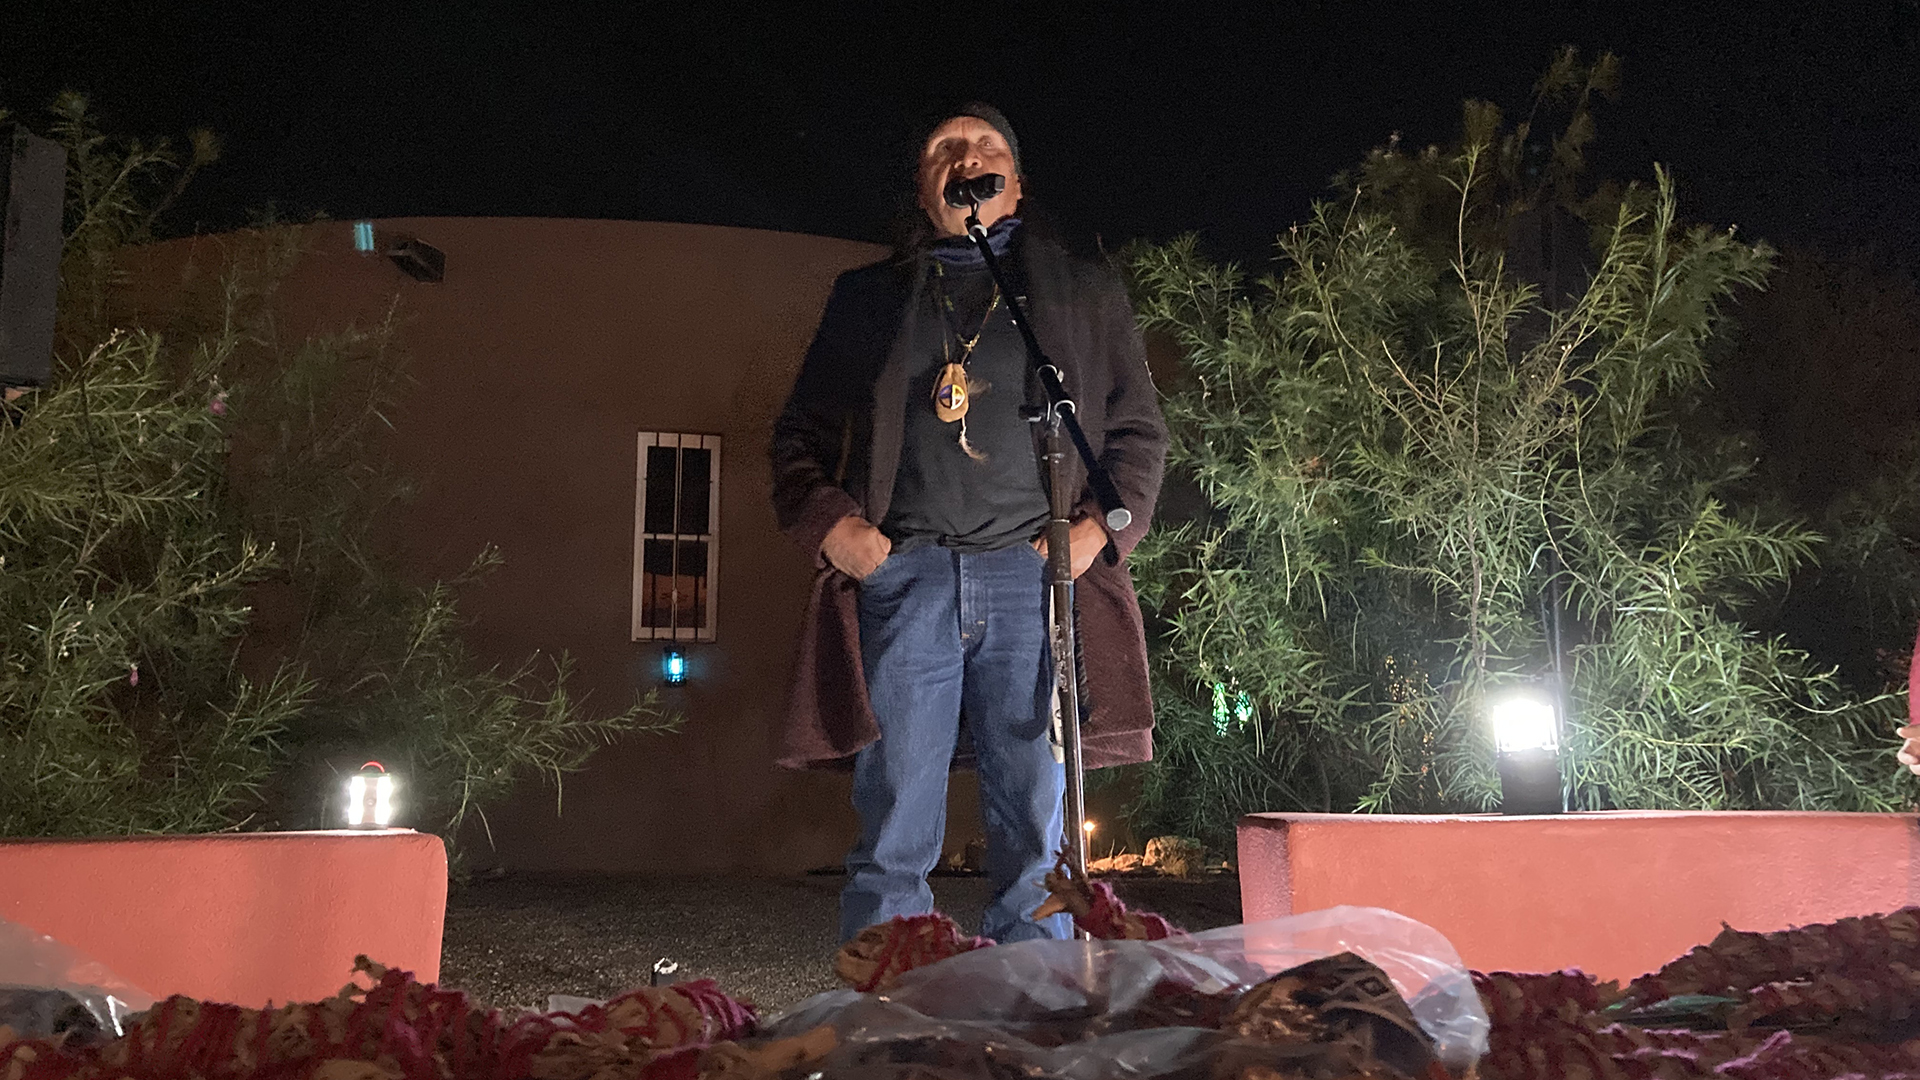 """Wendsler Nosie Sr. at Southside Presbyterian Church October 13, 2021, during Apache Stronghold's """"spiritual convoy"""" to the U.S. Court of Appeals for the Ninth Circuit concerning their motion for Temporary Restraining order and preliminary injunction at Oak Flat."""